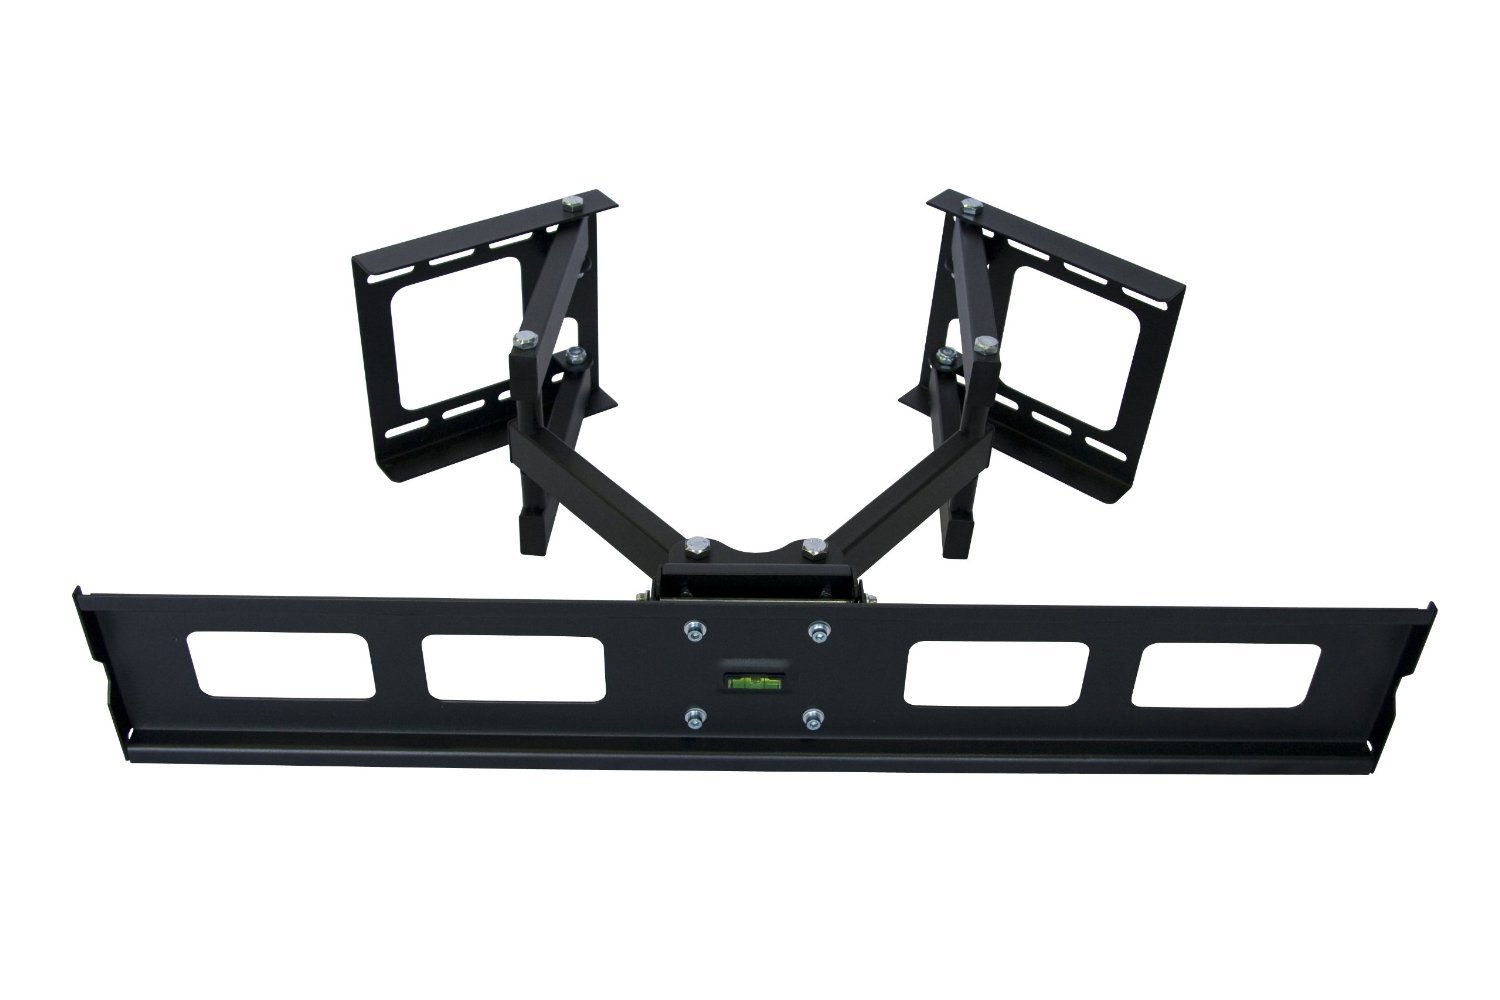 Amazon.com: Corner - TV Ceiling & Wall Mounts / TV Accessories ...